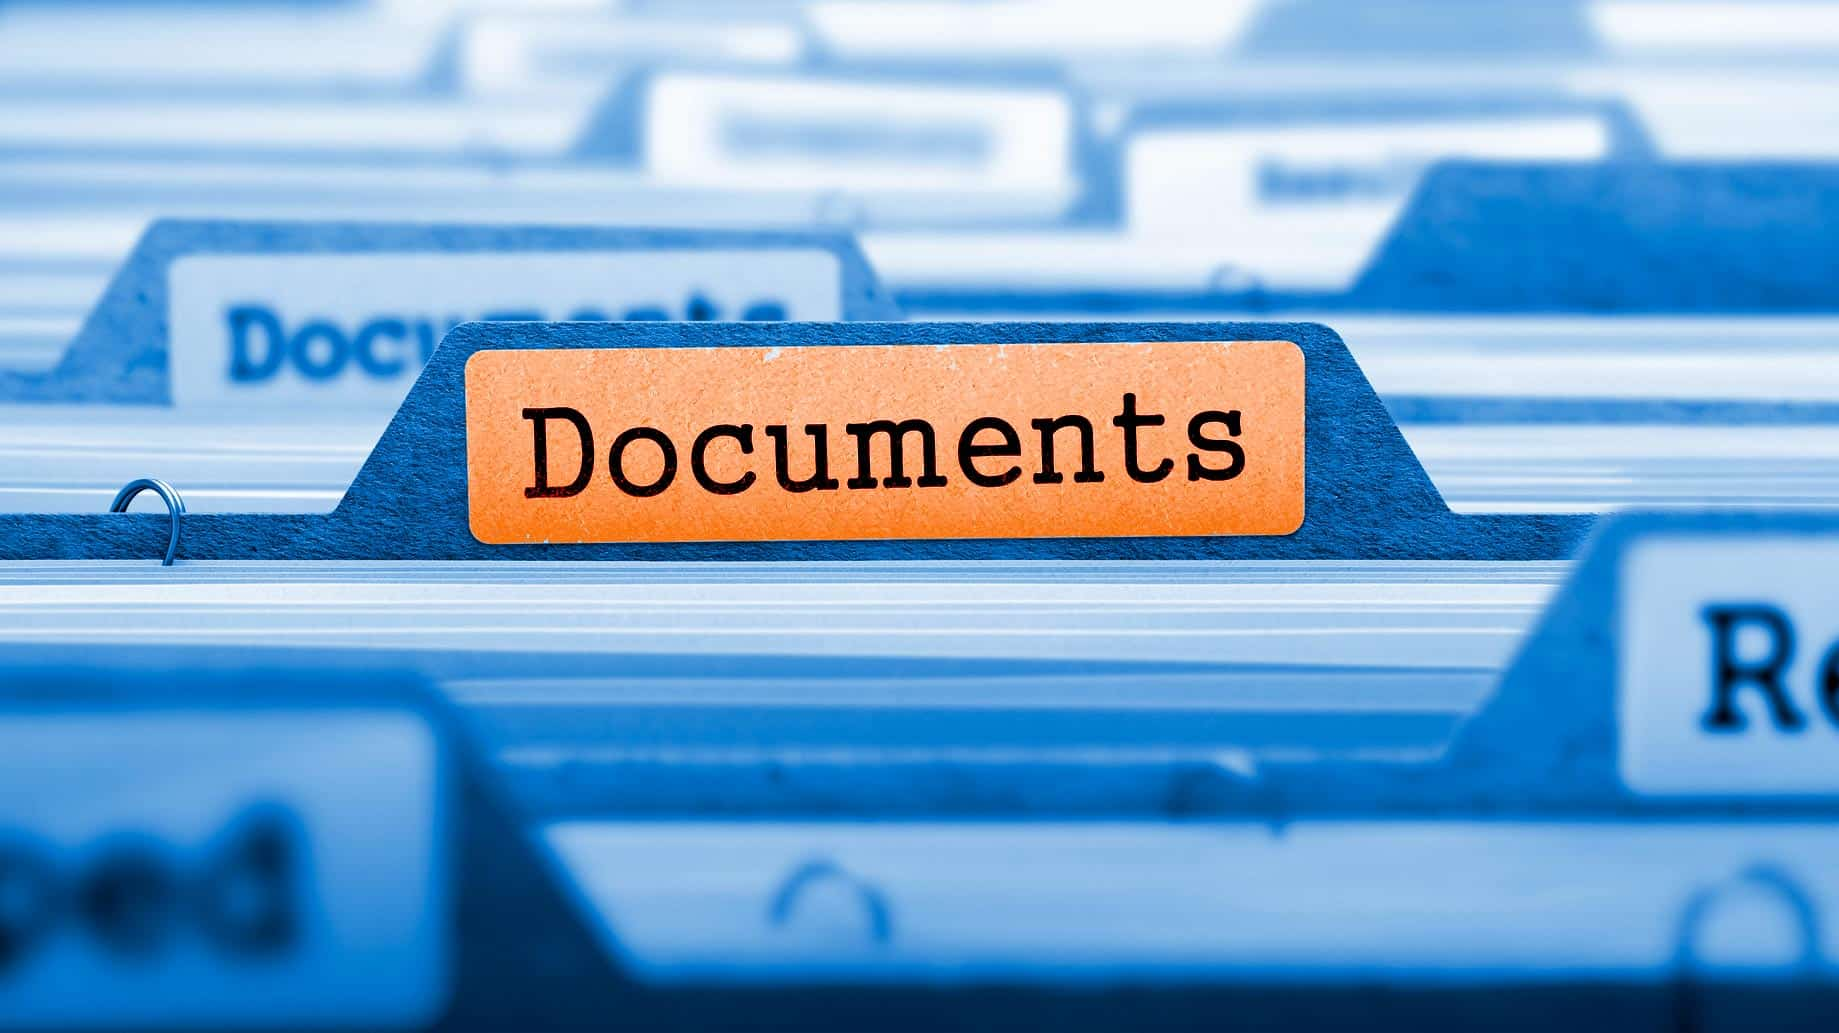 demande de documents